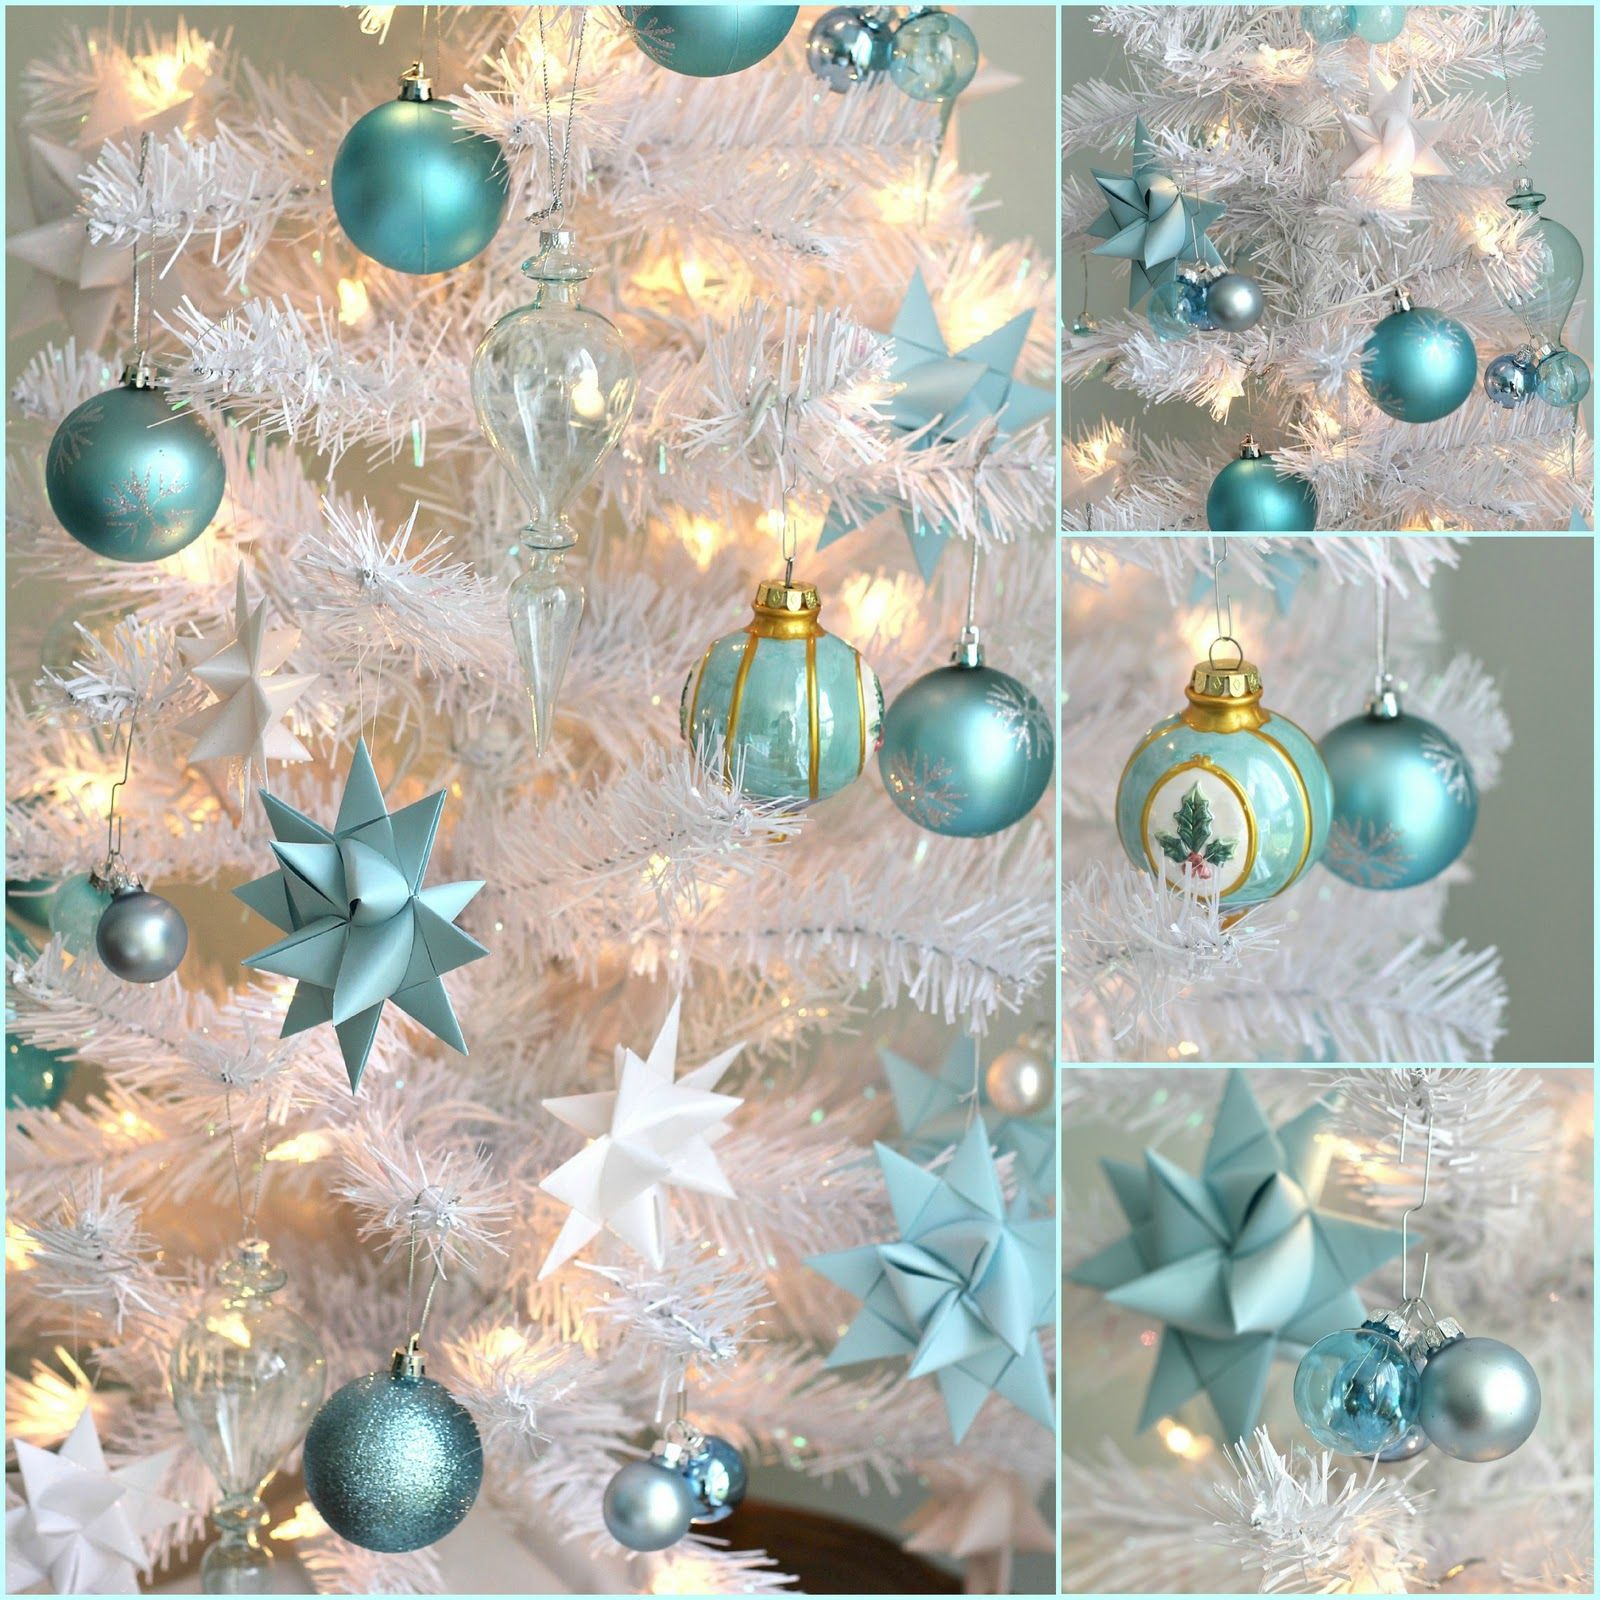 Turquoise And White Christmas Tree: With A Grateful Prayer And A Thankful Heart: We've Been